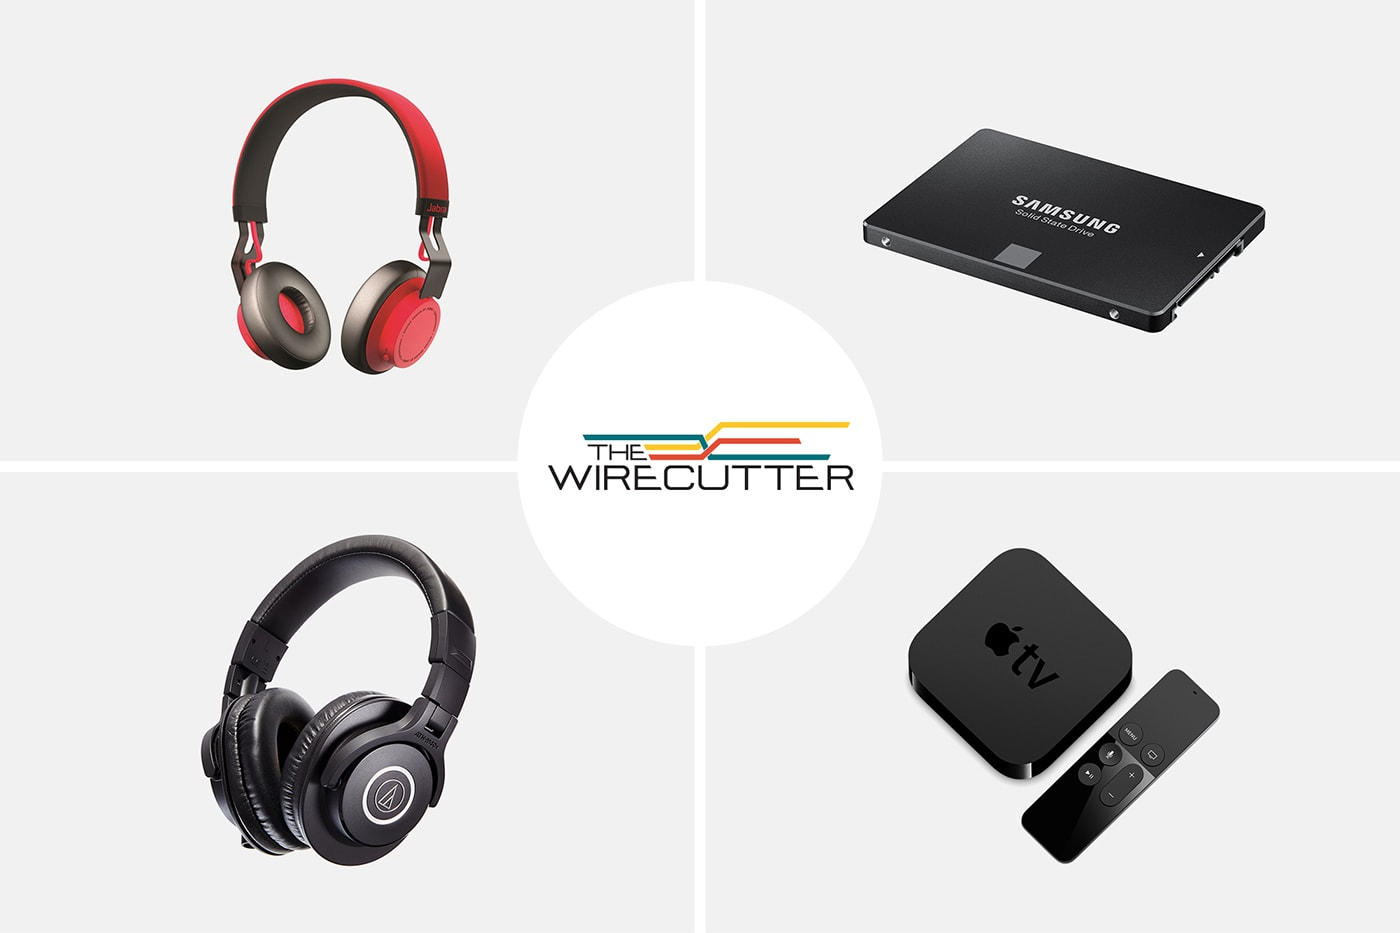 5bd64923c6d The Wirecutter's best deals: An Apple TV media streamer and more!